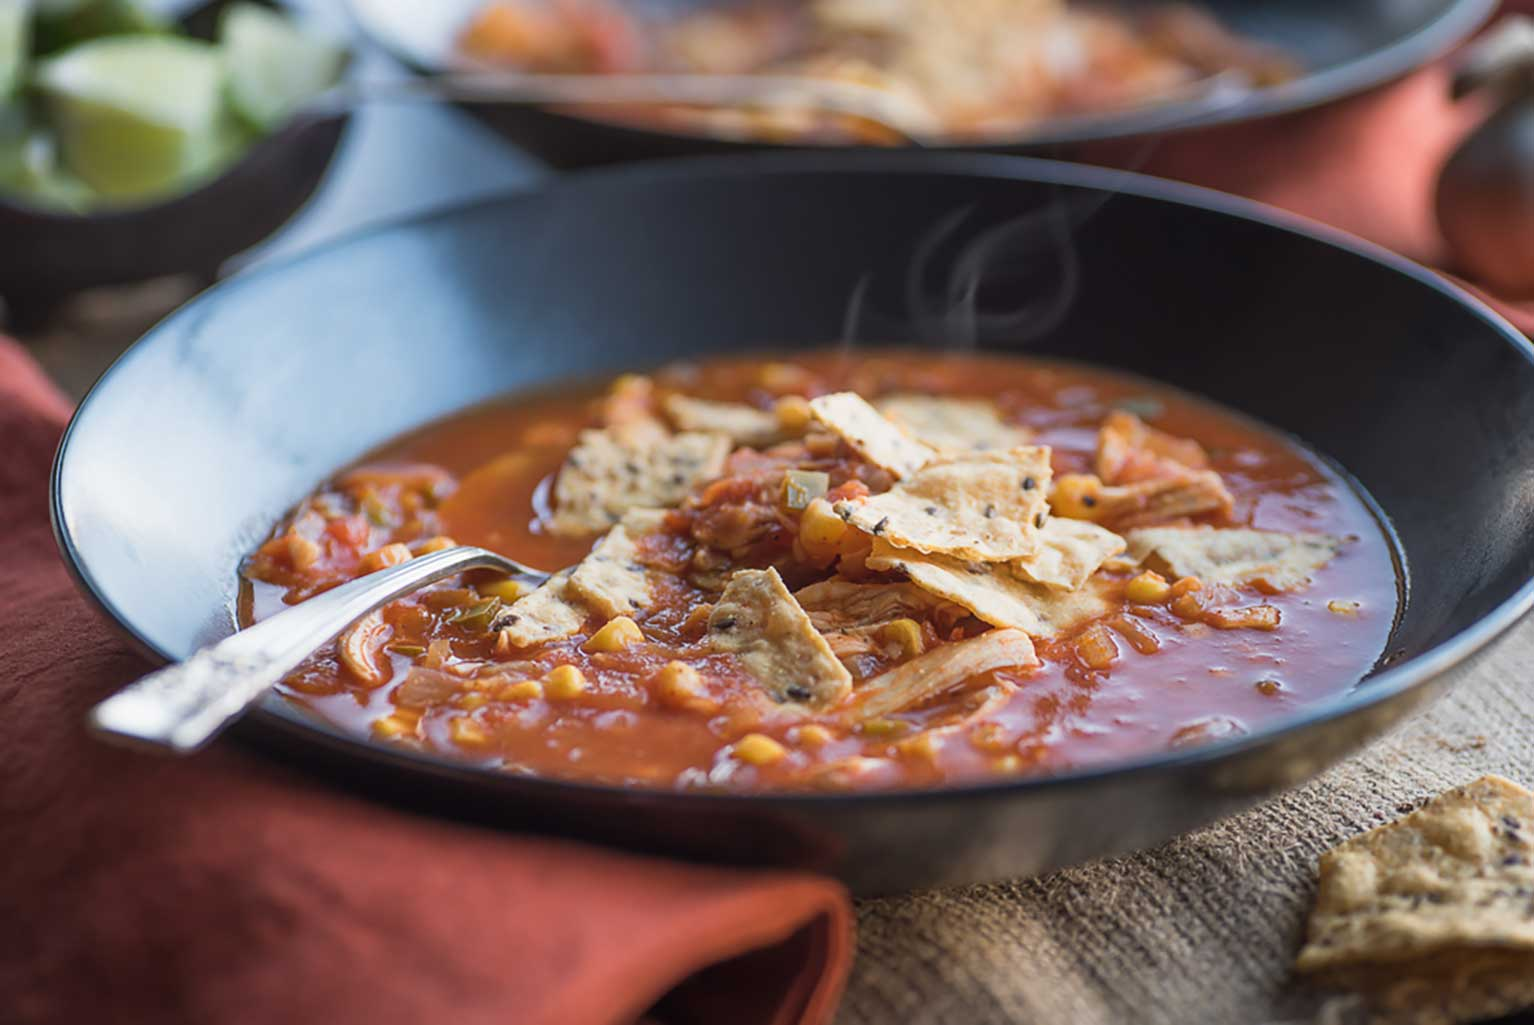 Chicken-tortilla-soup-with-corn-in-a-bowl-with-a-spoon